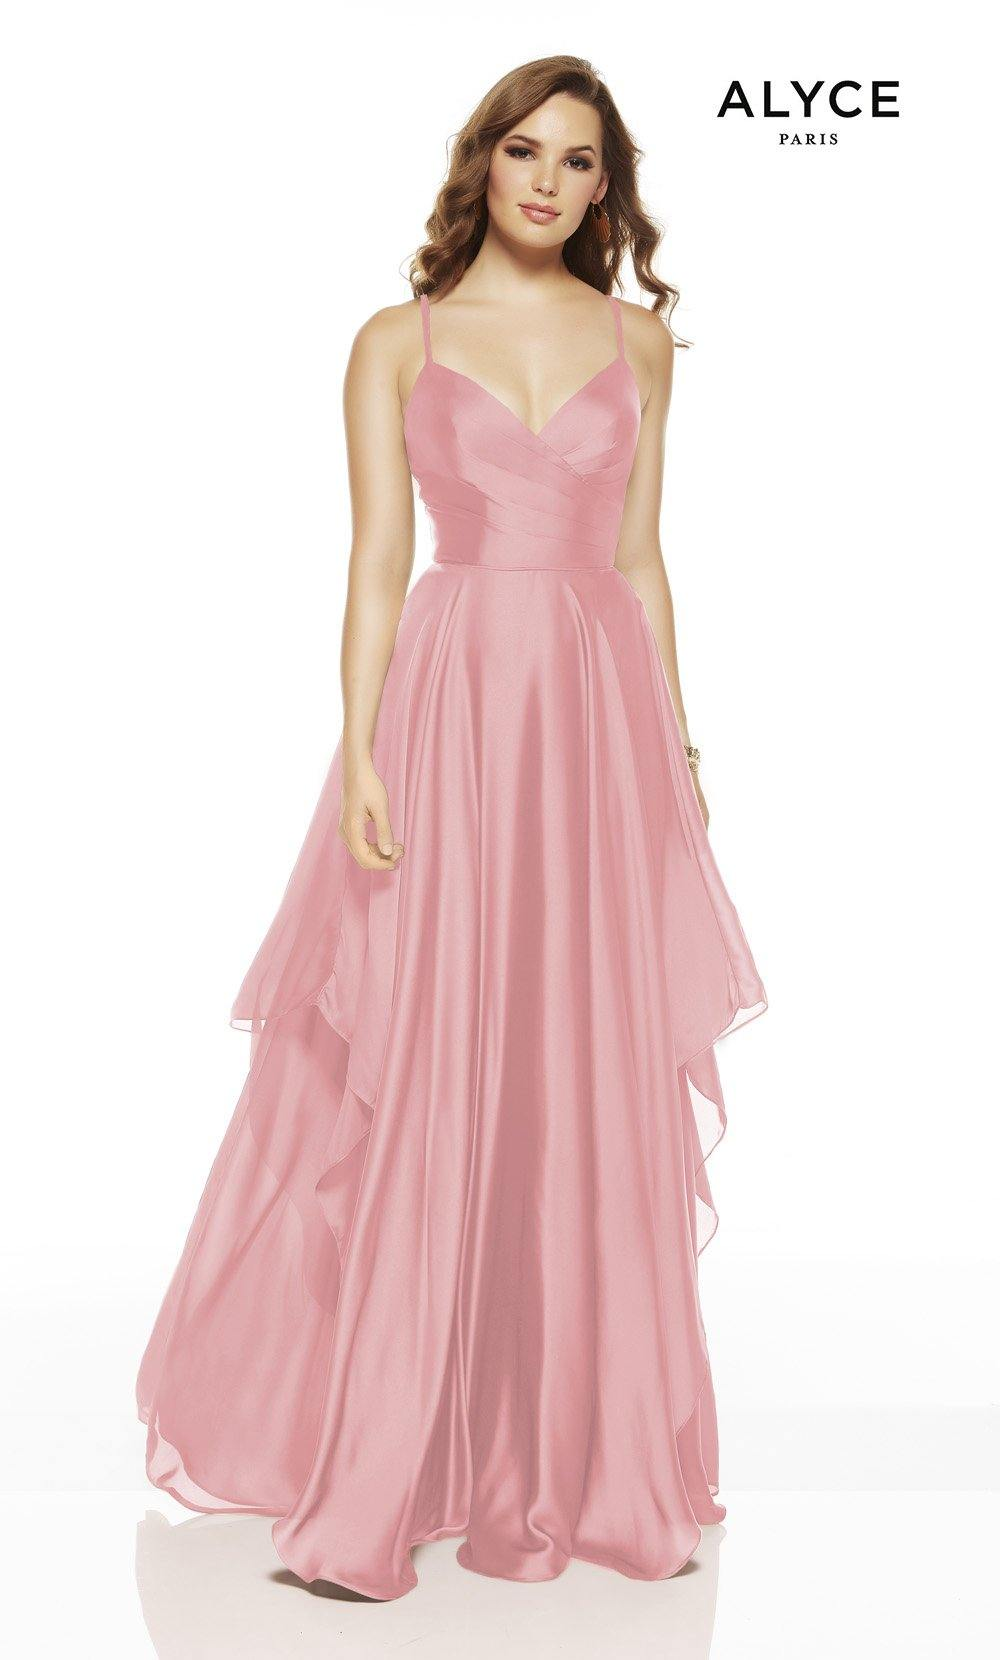 Rosewood flowy wedding guest dress with a V-neckline